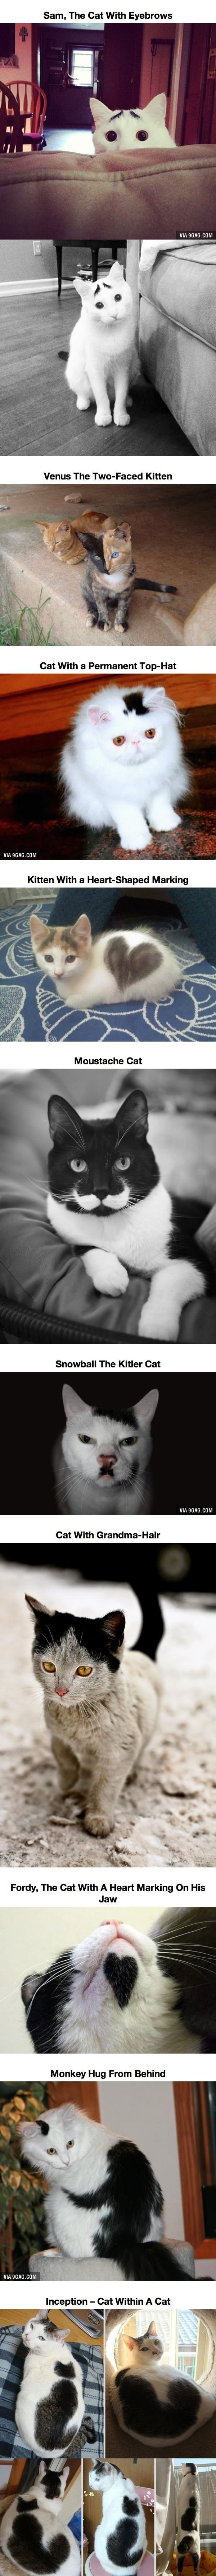 10 Cats That Got Famous For Their Awesome Fur Markings | See more about furs and cats.